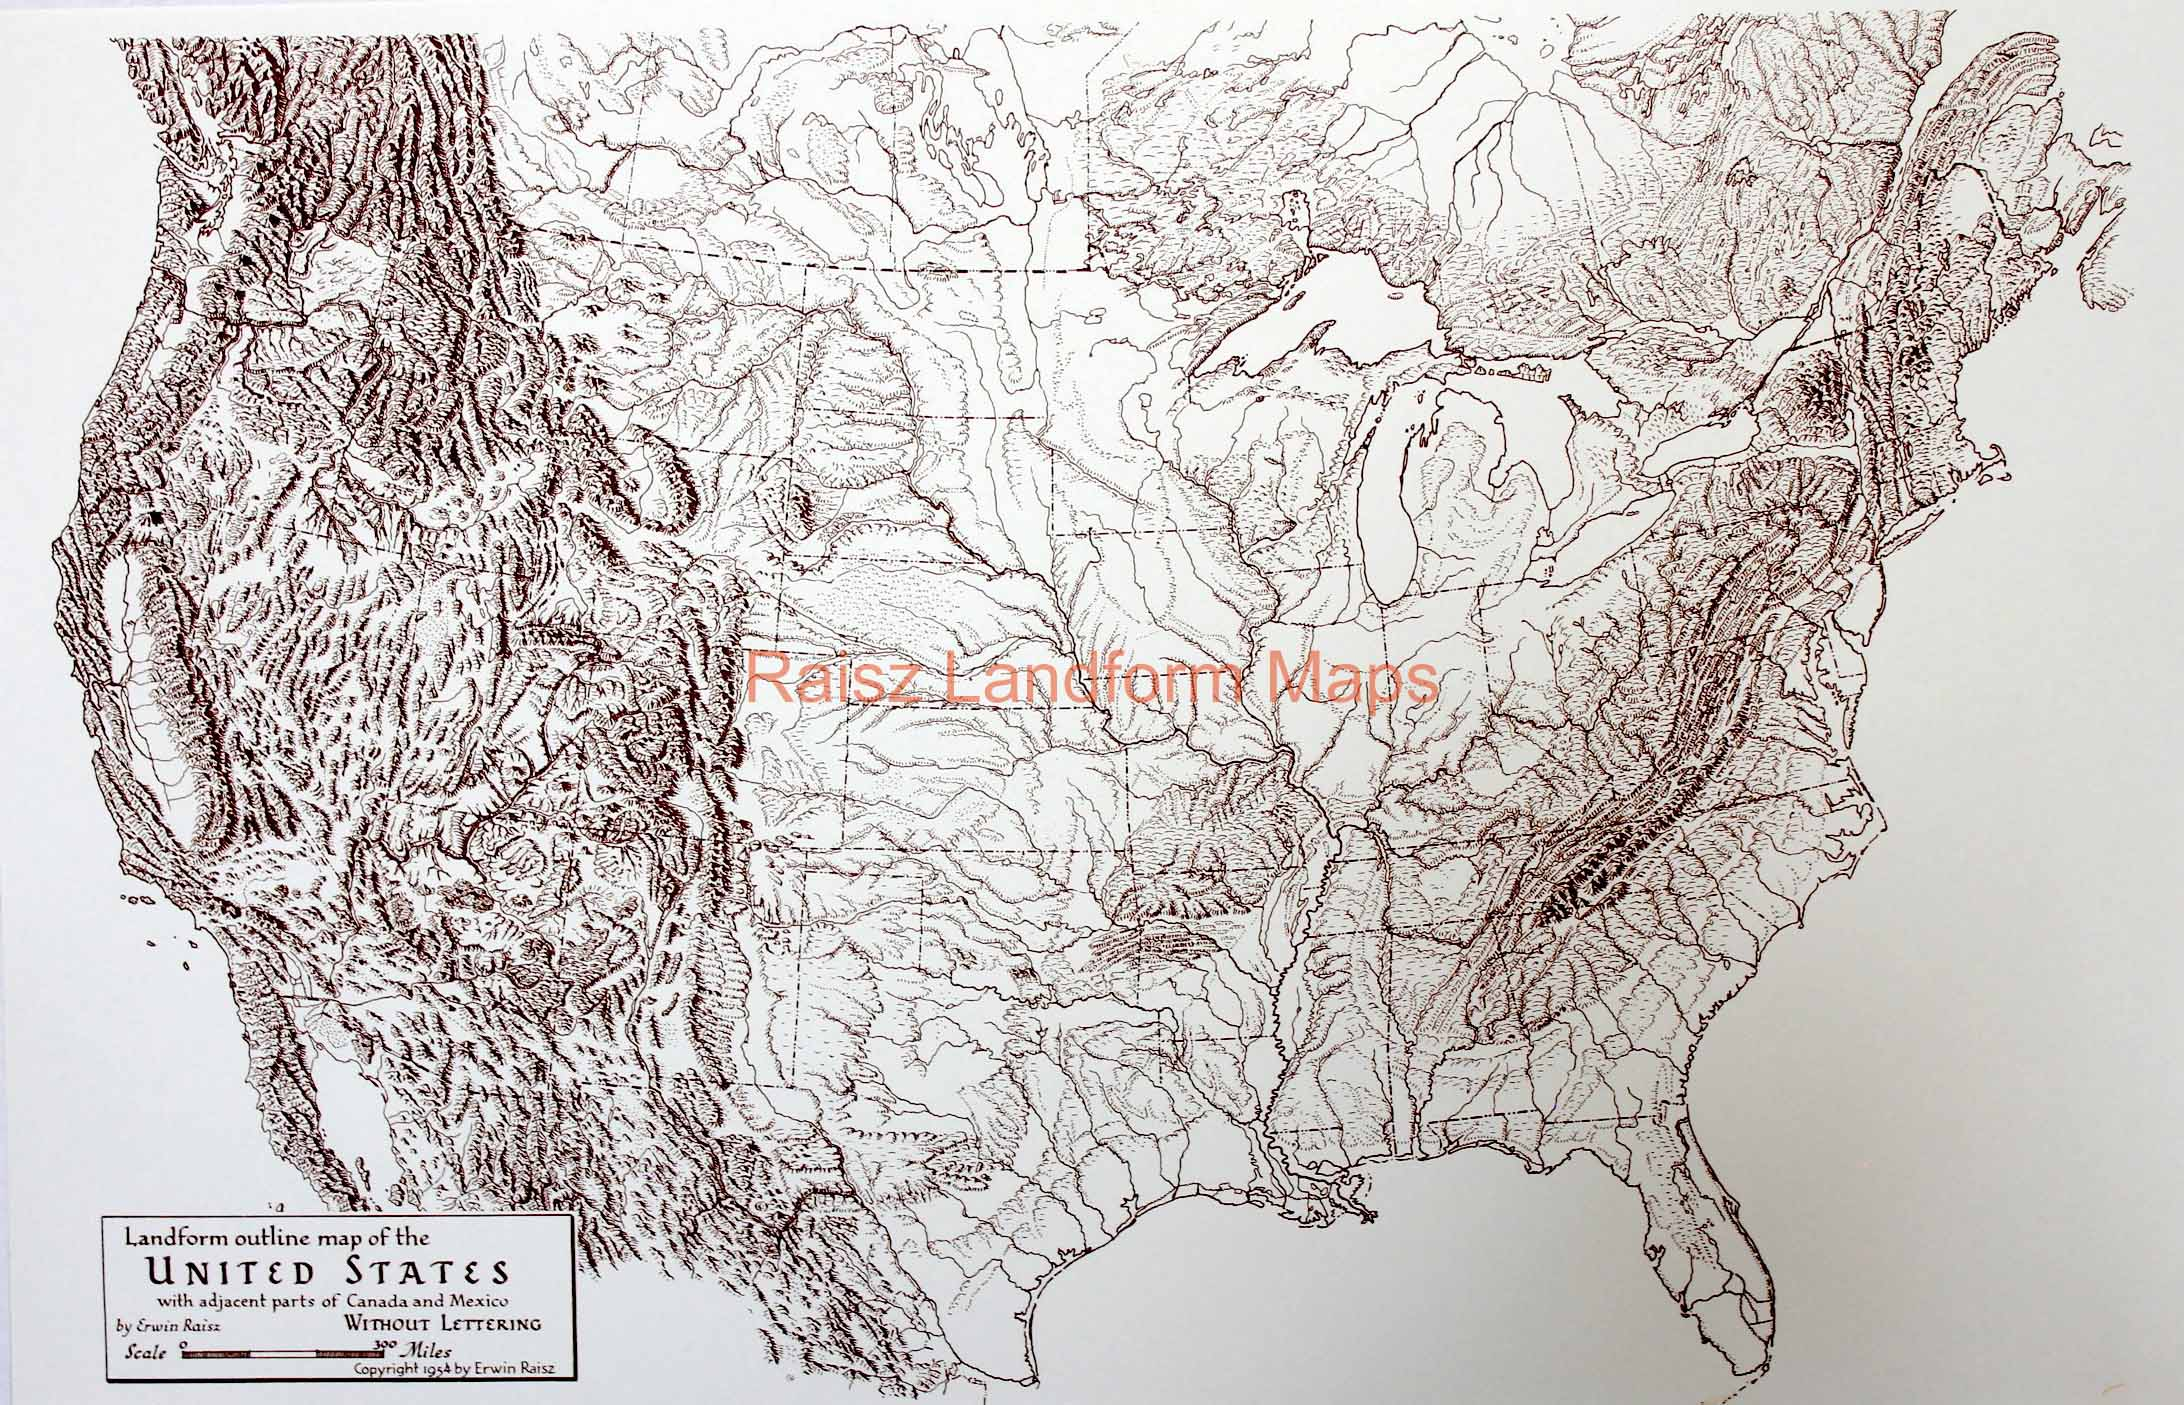 Landform Outline Map of the United States